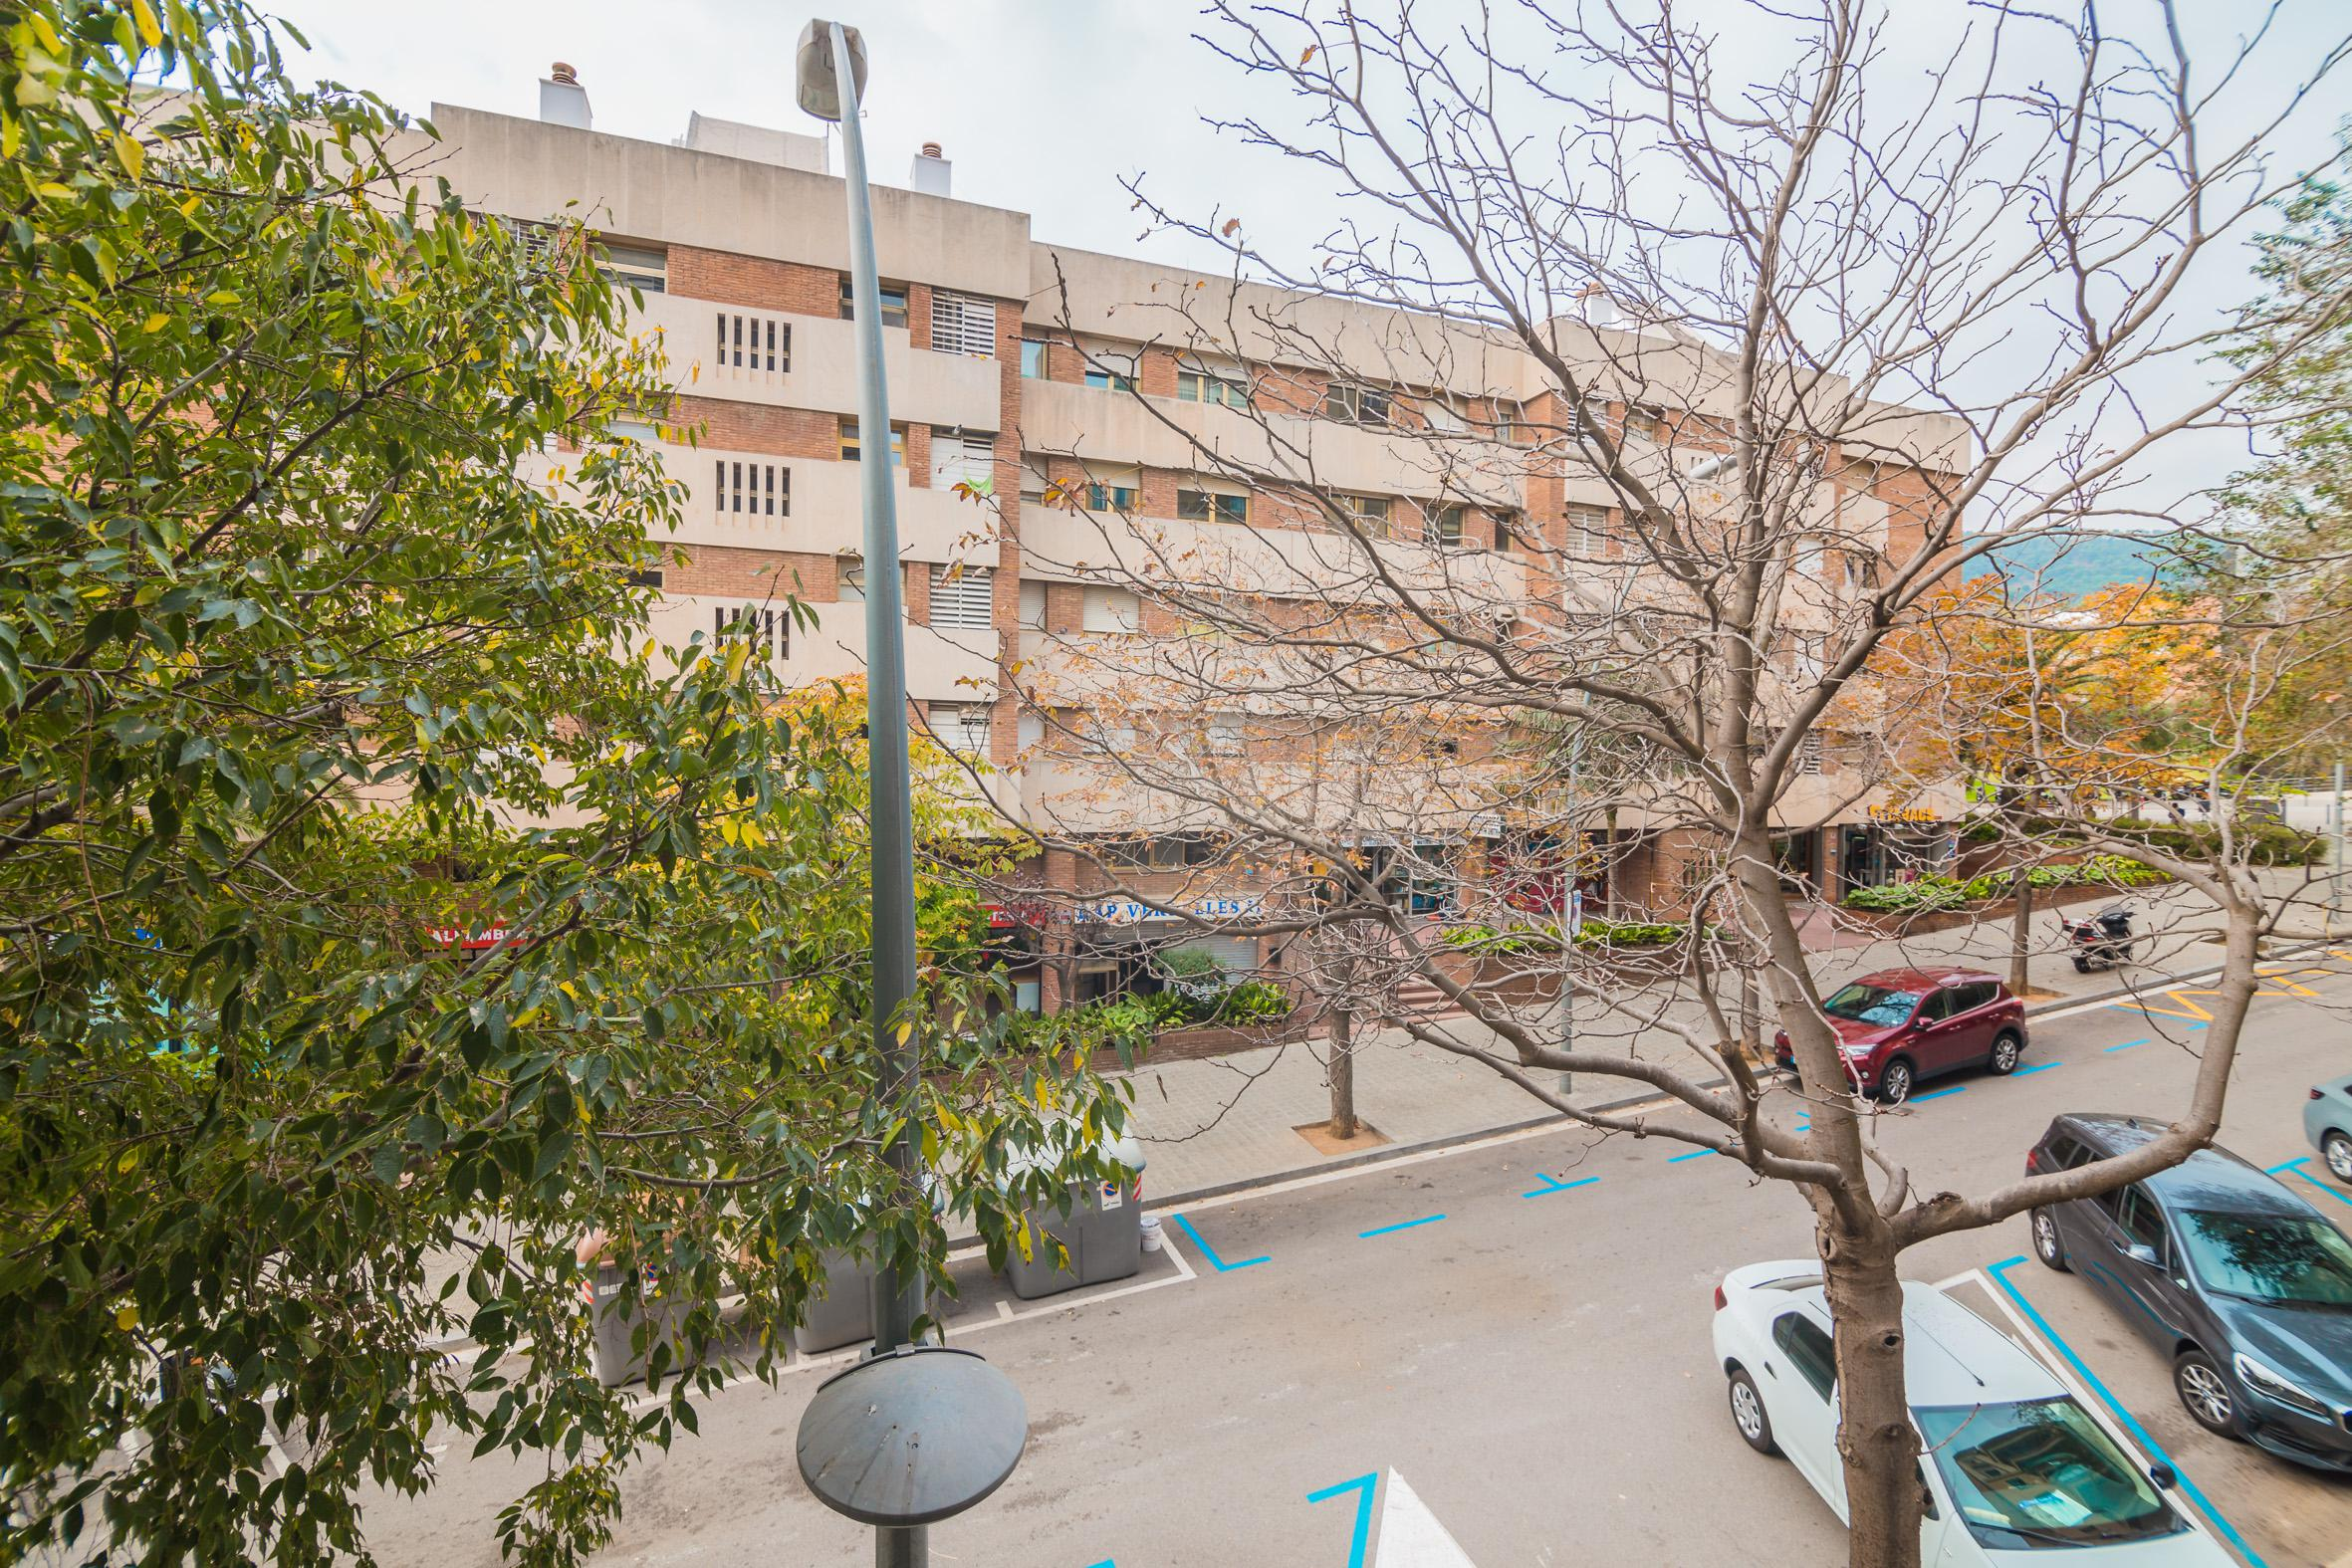 246902 Flat for sale in Les Corts, Pedralbes 8